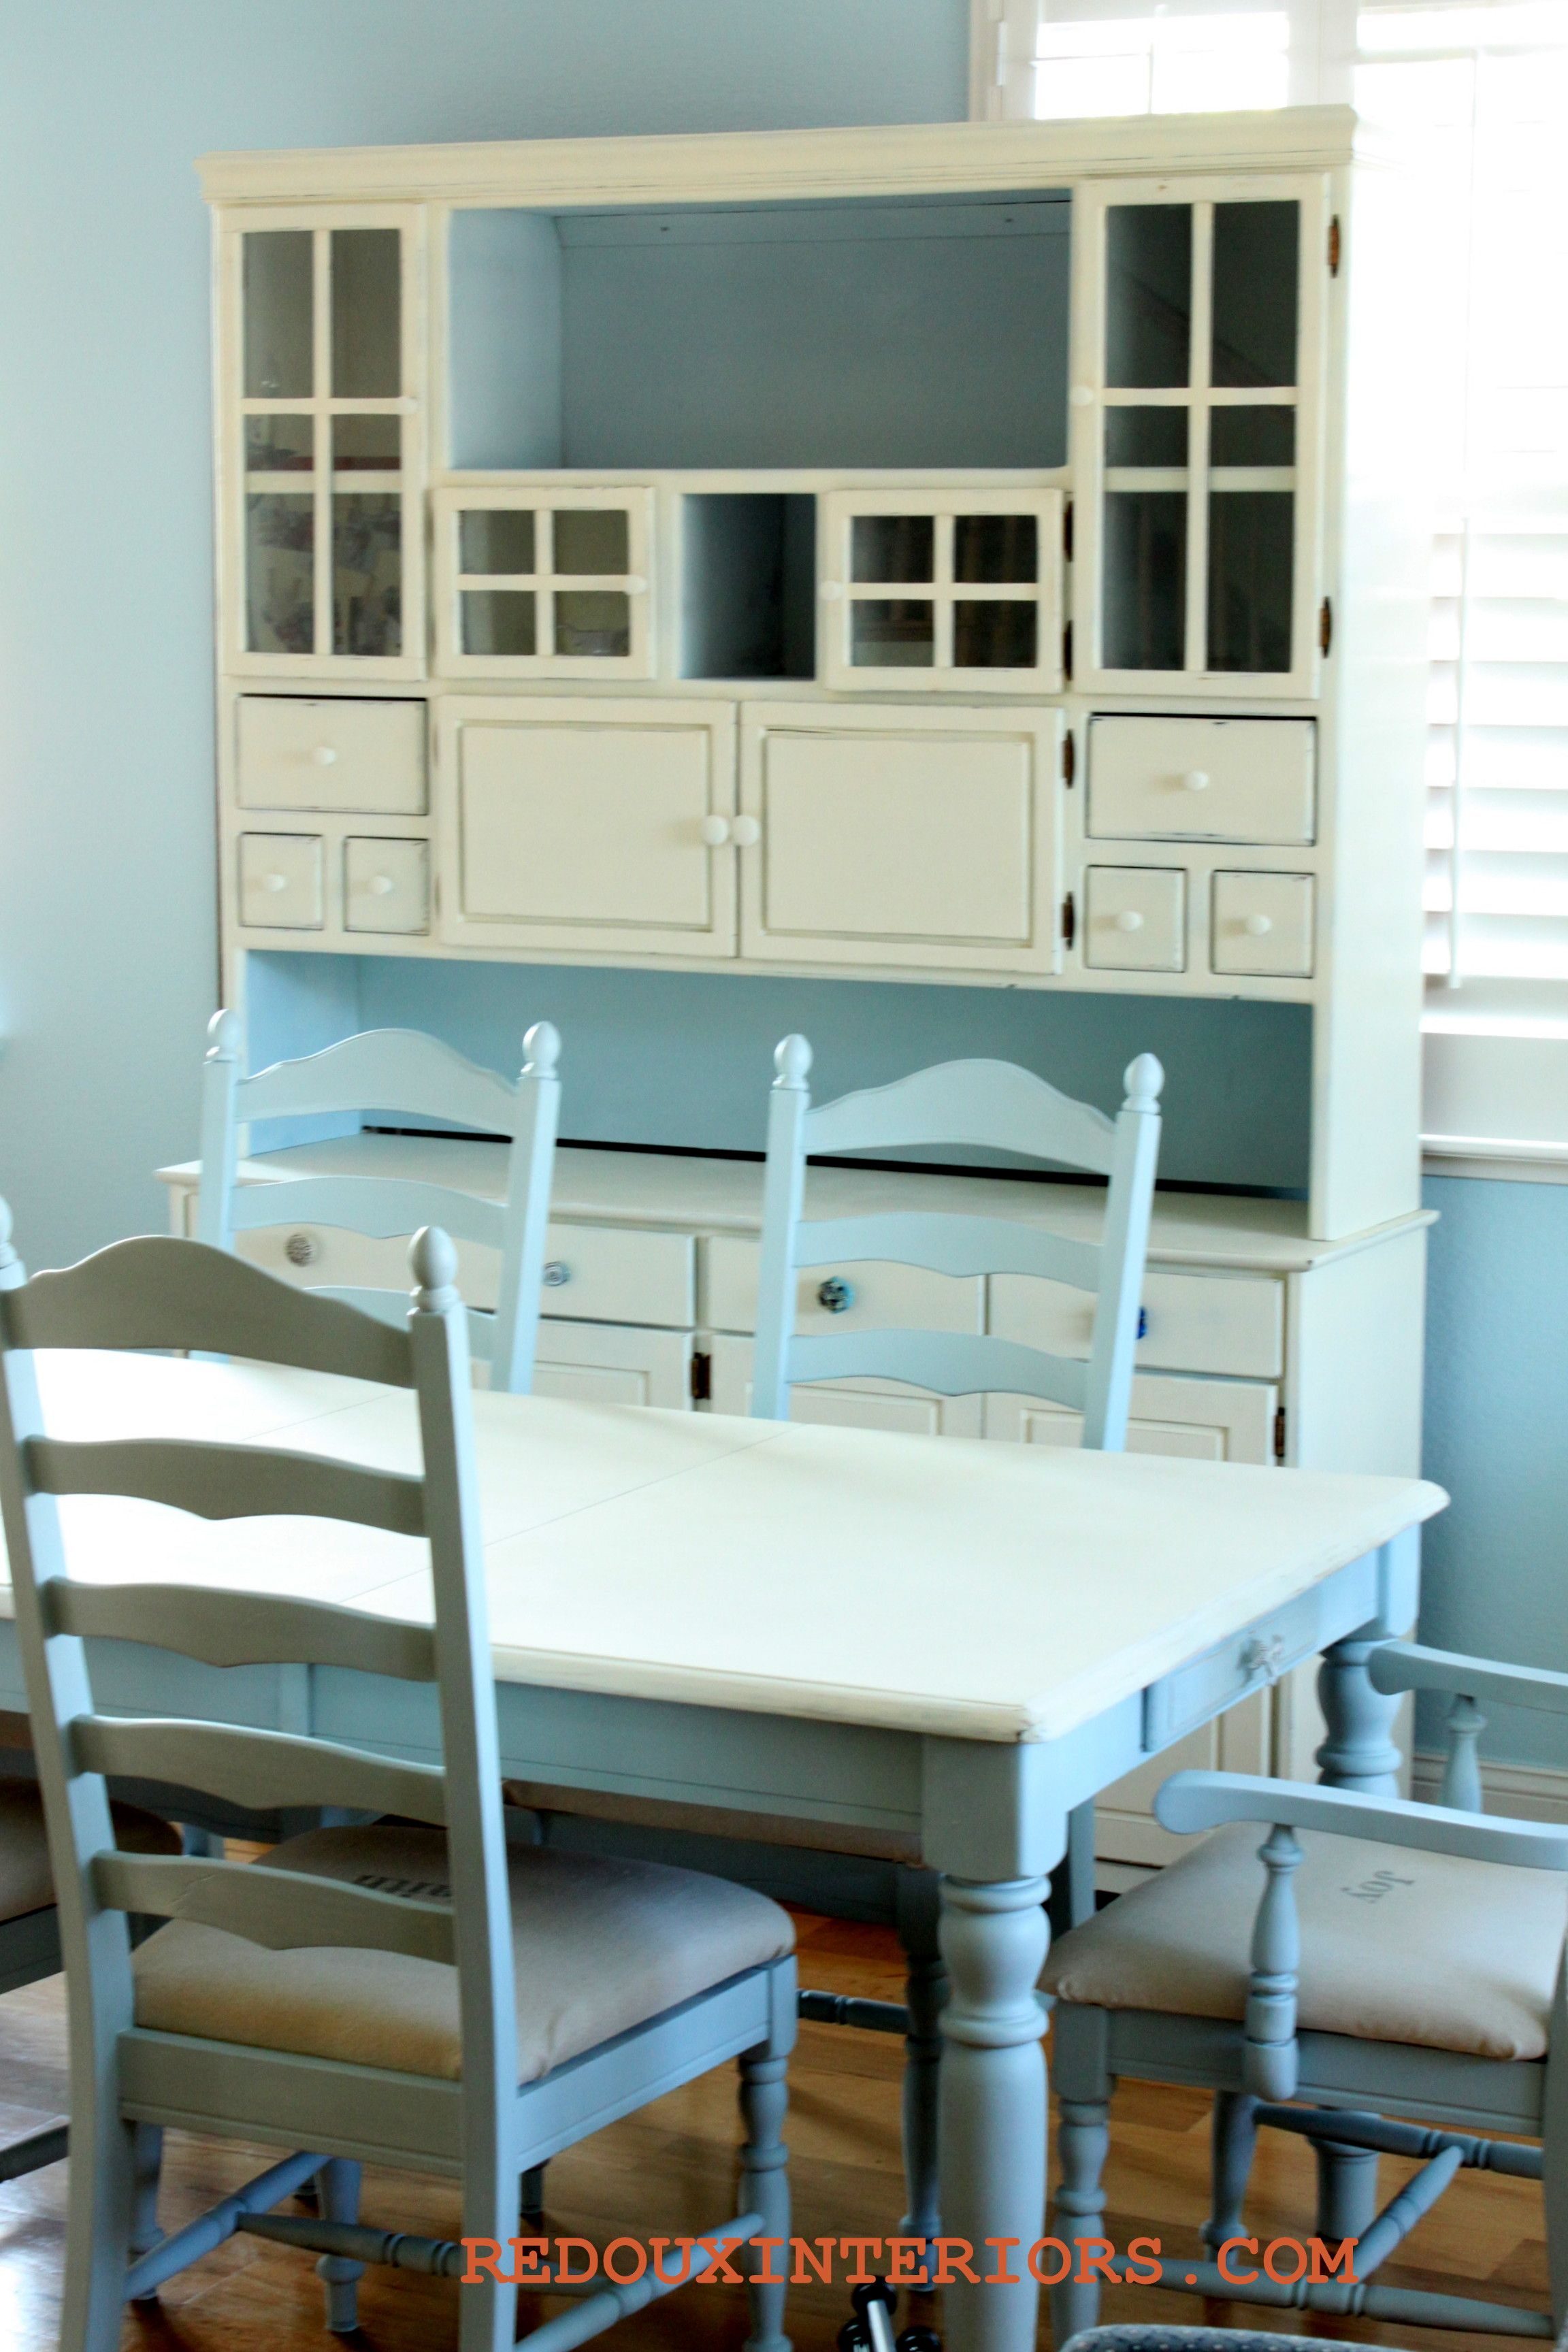 The Whole Kitchen Set, from Black to White - | DIY Crafty Things ...